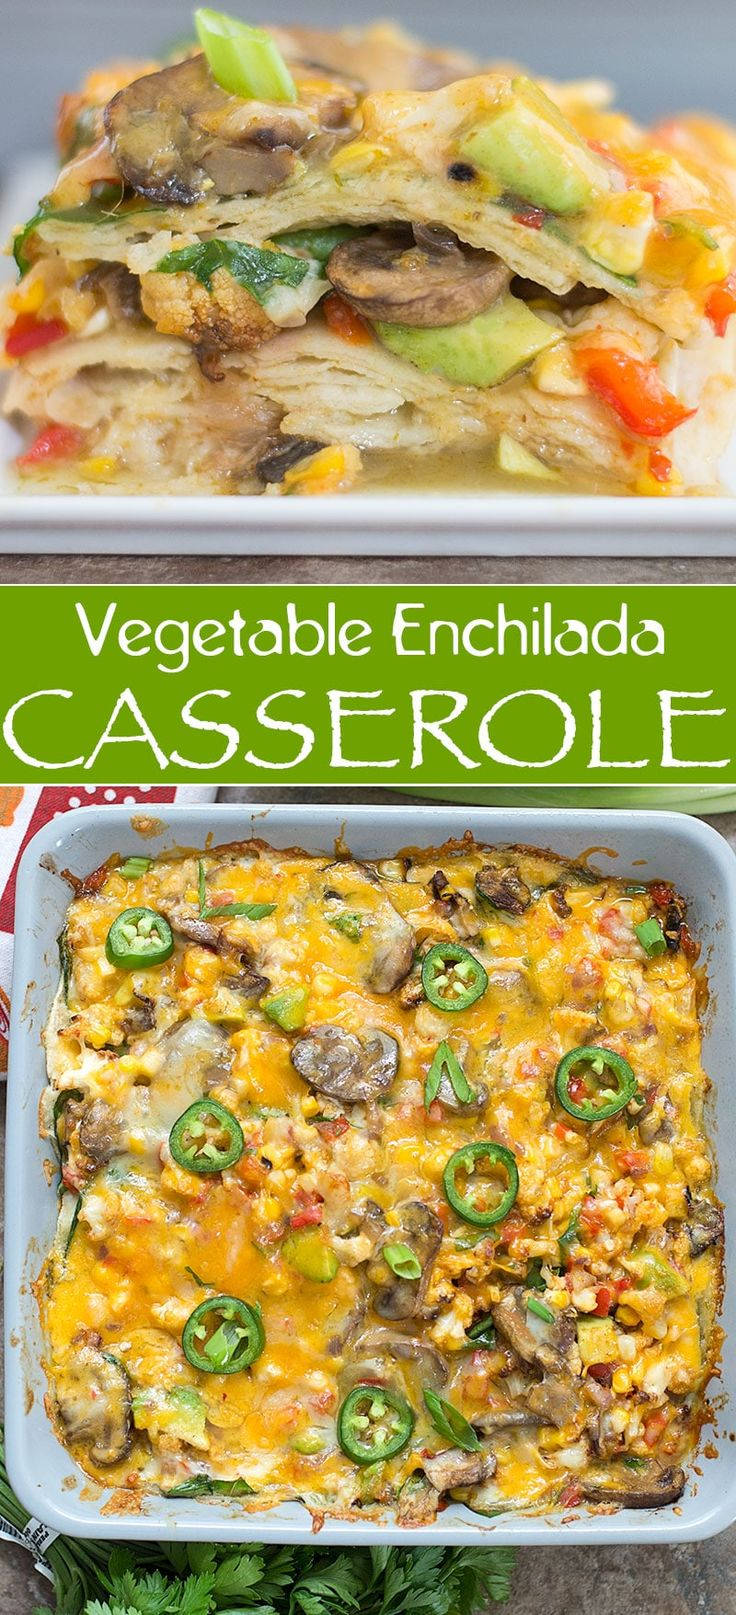 10556 best images about Veggie recipes on Pinterest ...